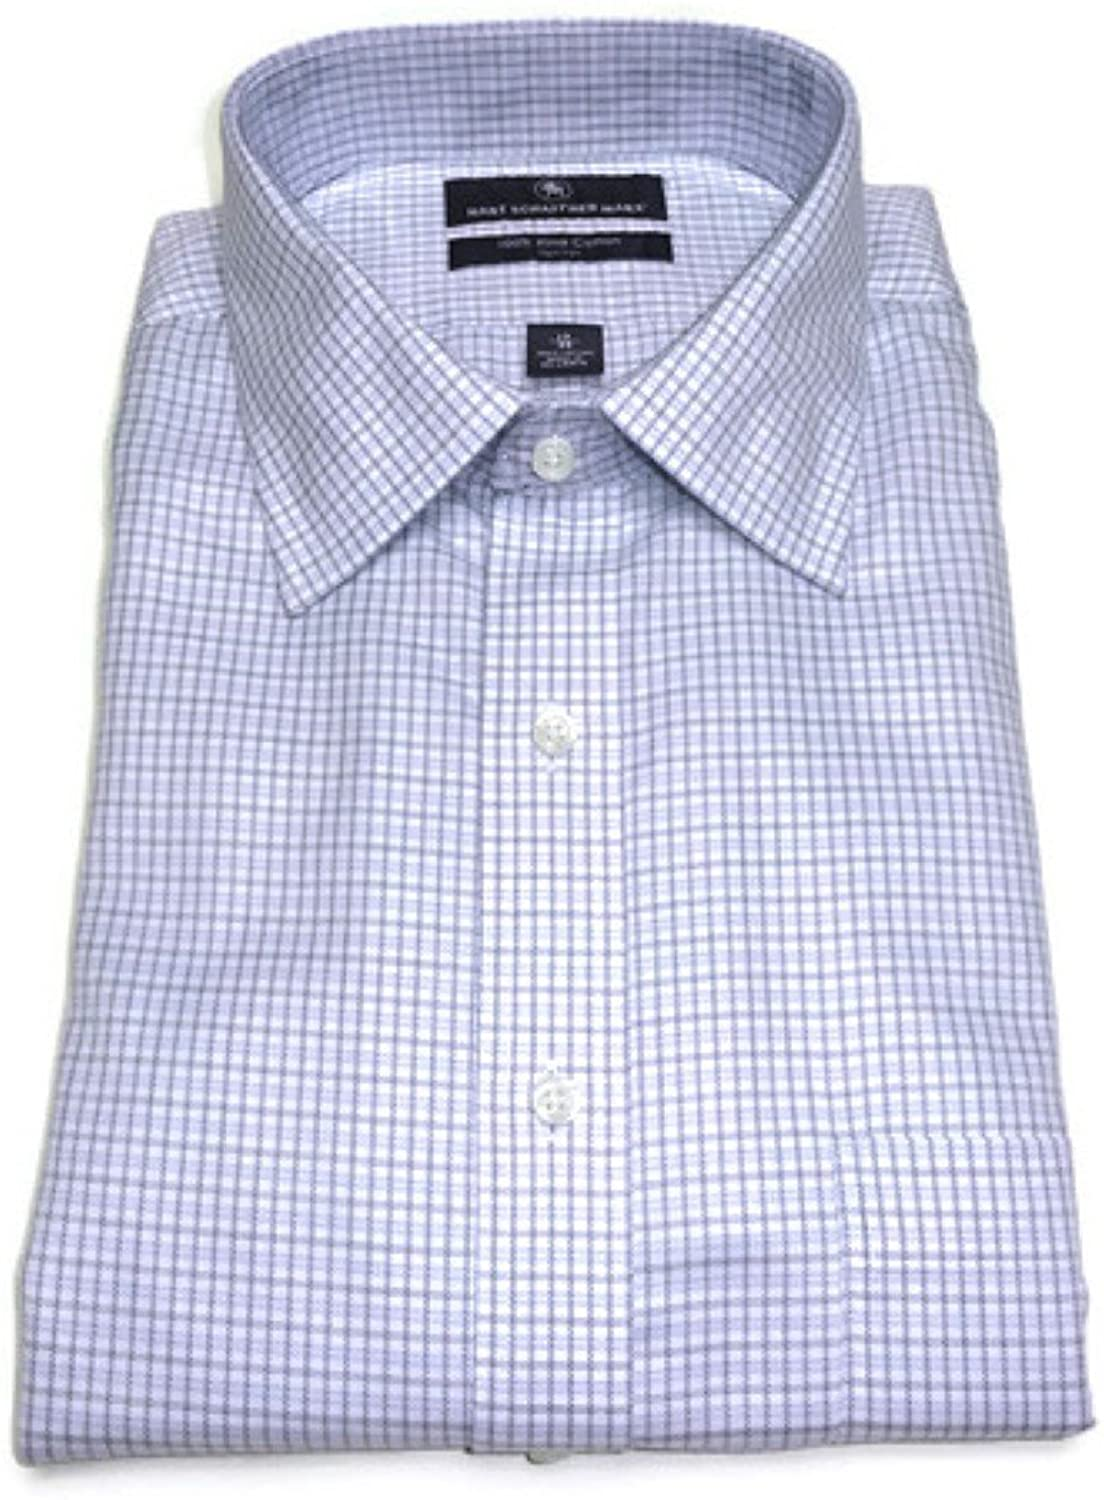 Hart Schaffner Marx Non-Iron Fitted Classic-Fit Spread-Collar Check Dress Shirt, White Multi 17-35